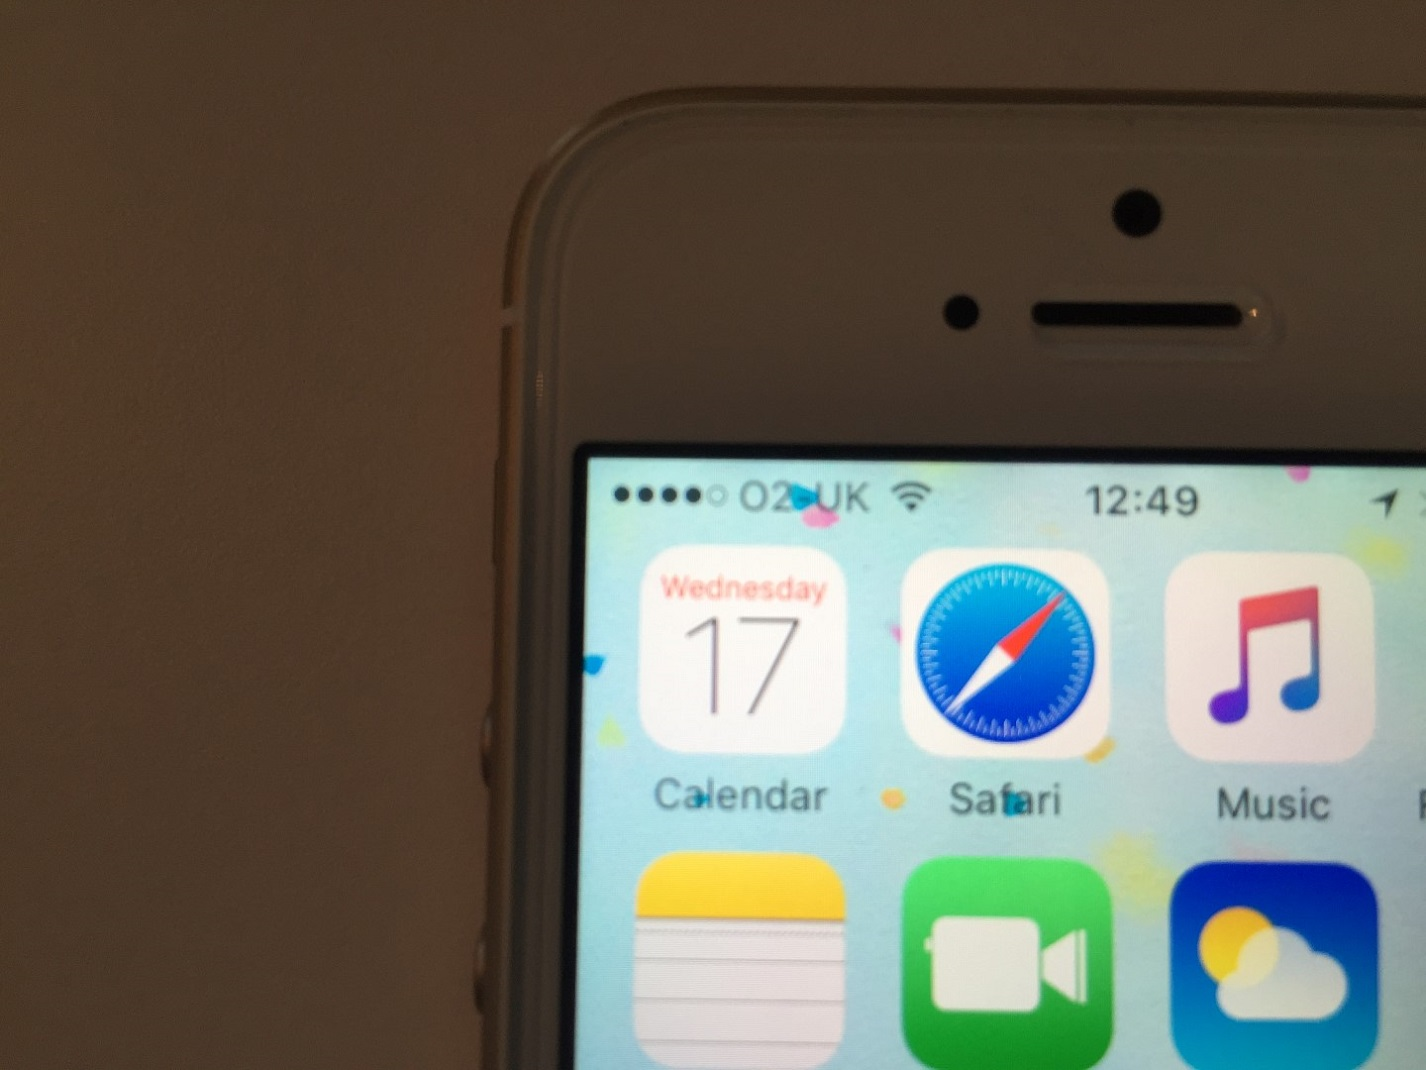 iPhone on O2 Network